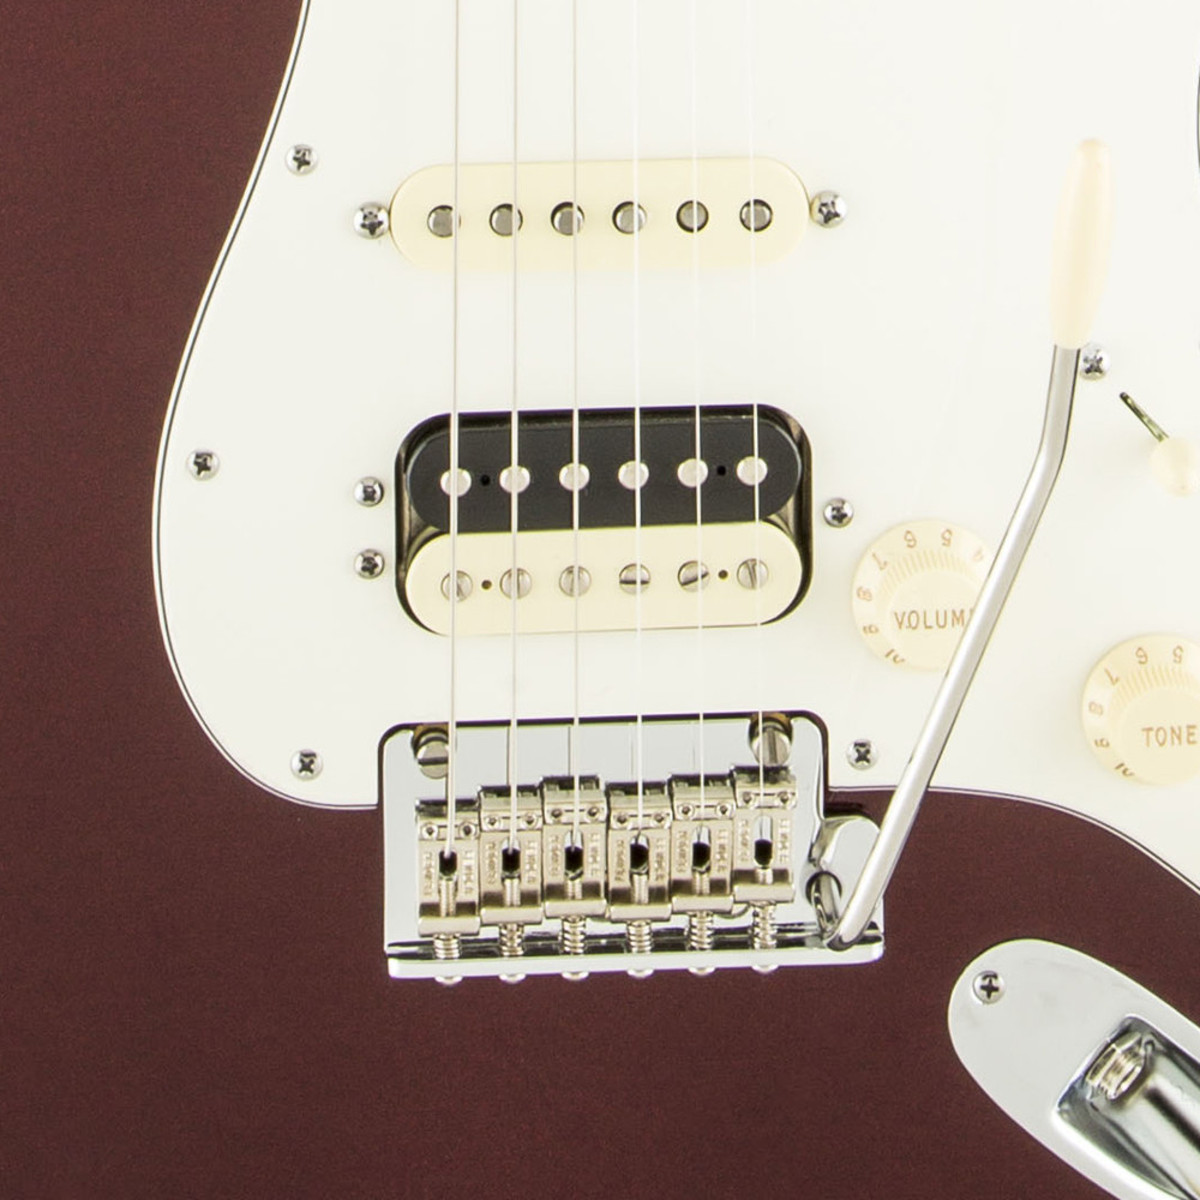 hss wiring diagram seymour duncan ford electronic ignition stratocaster get free image about